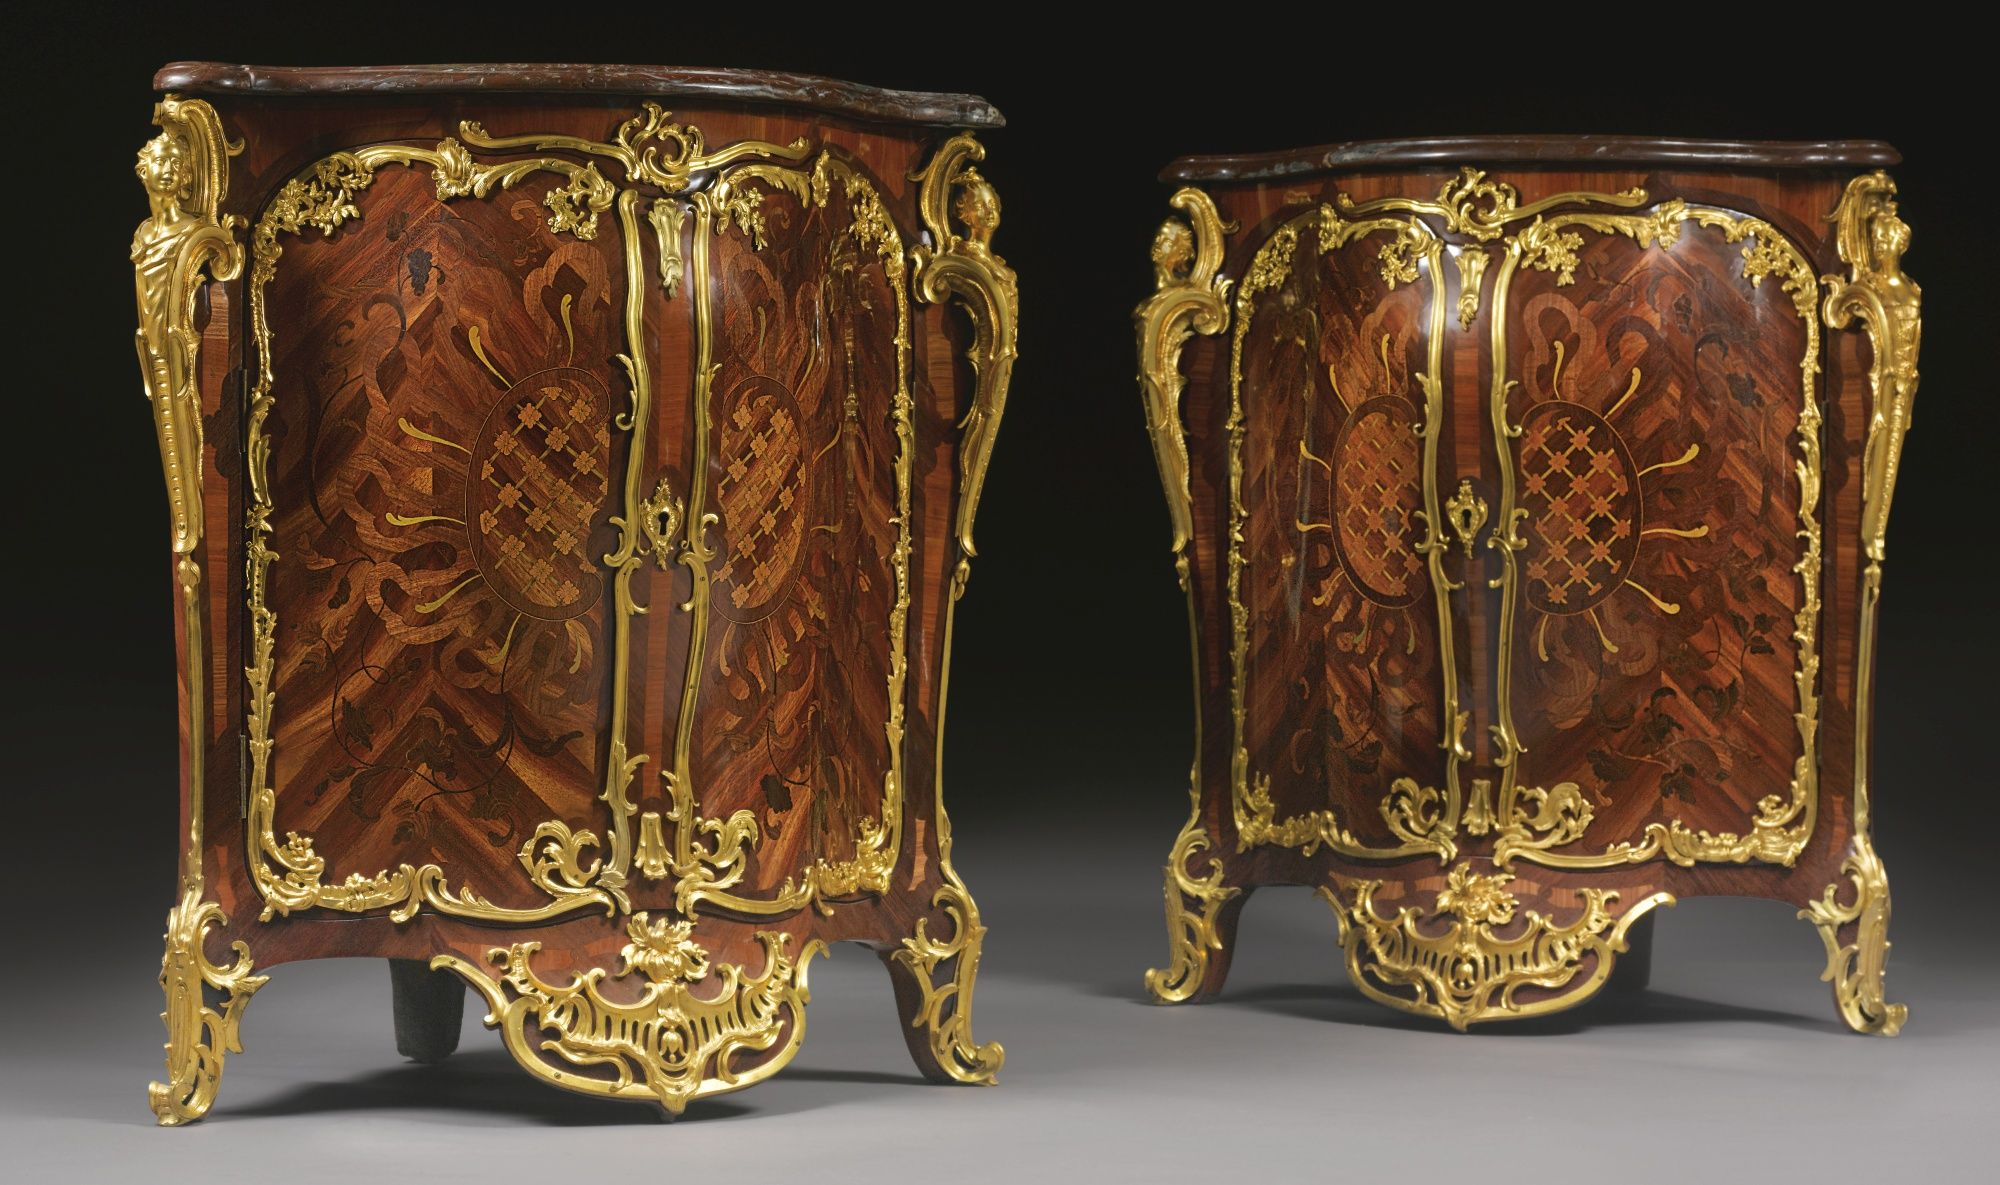 Chair Styles And Names: A Pair Of Louis XV Ormolu-mounted Kingwood, Tulipwood And